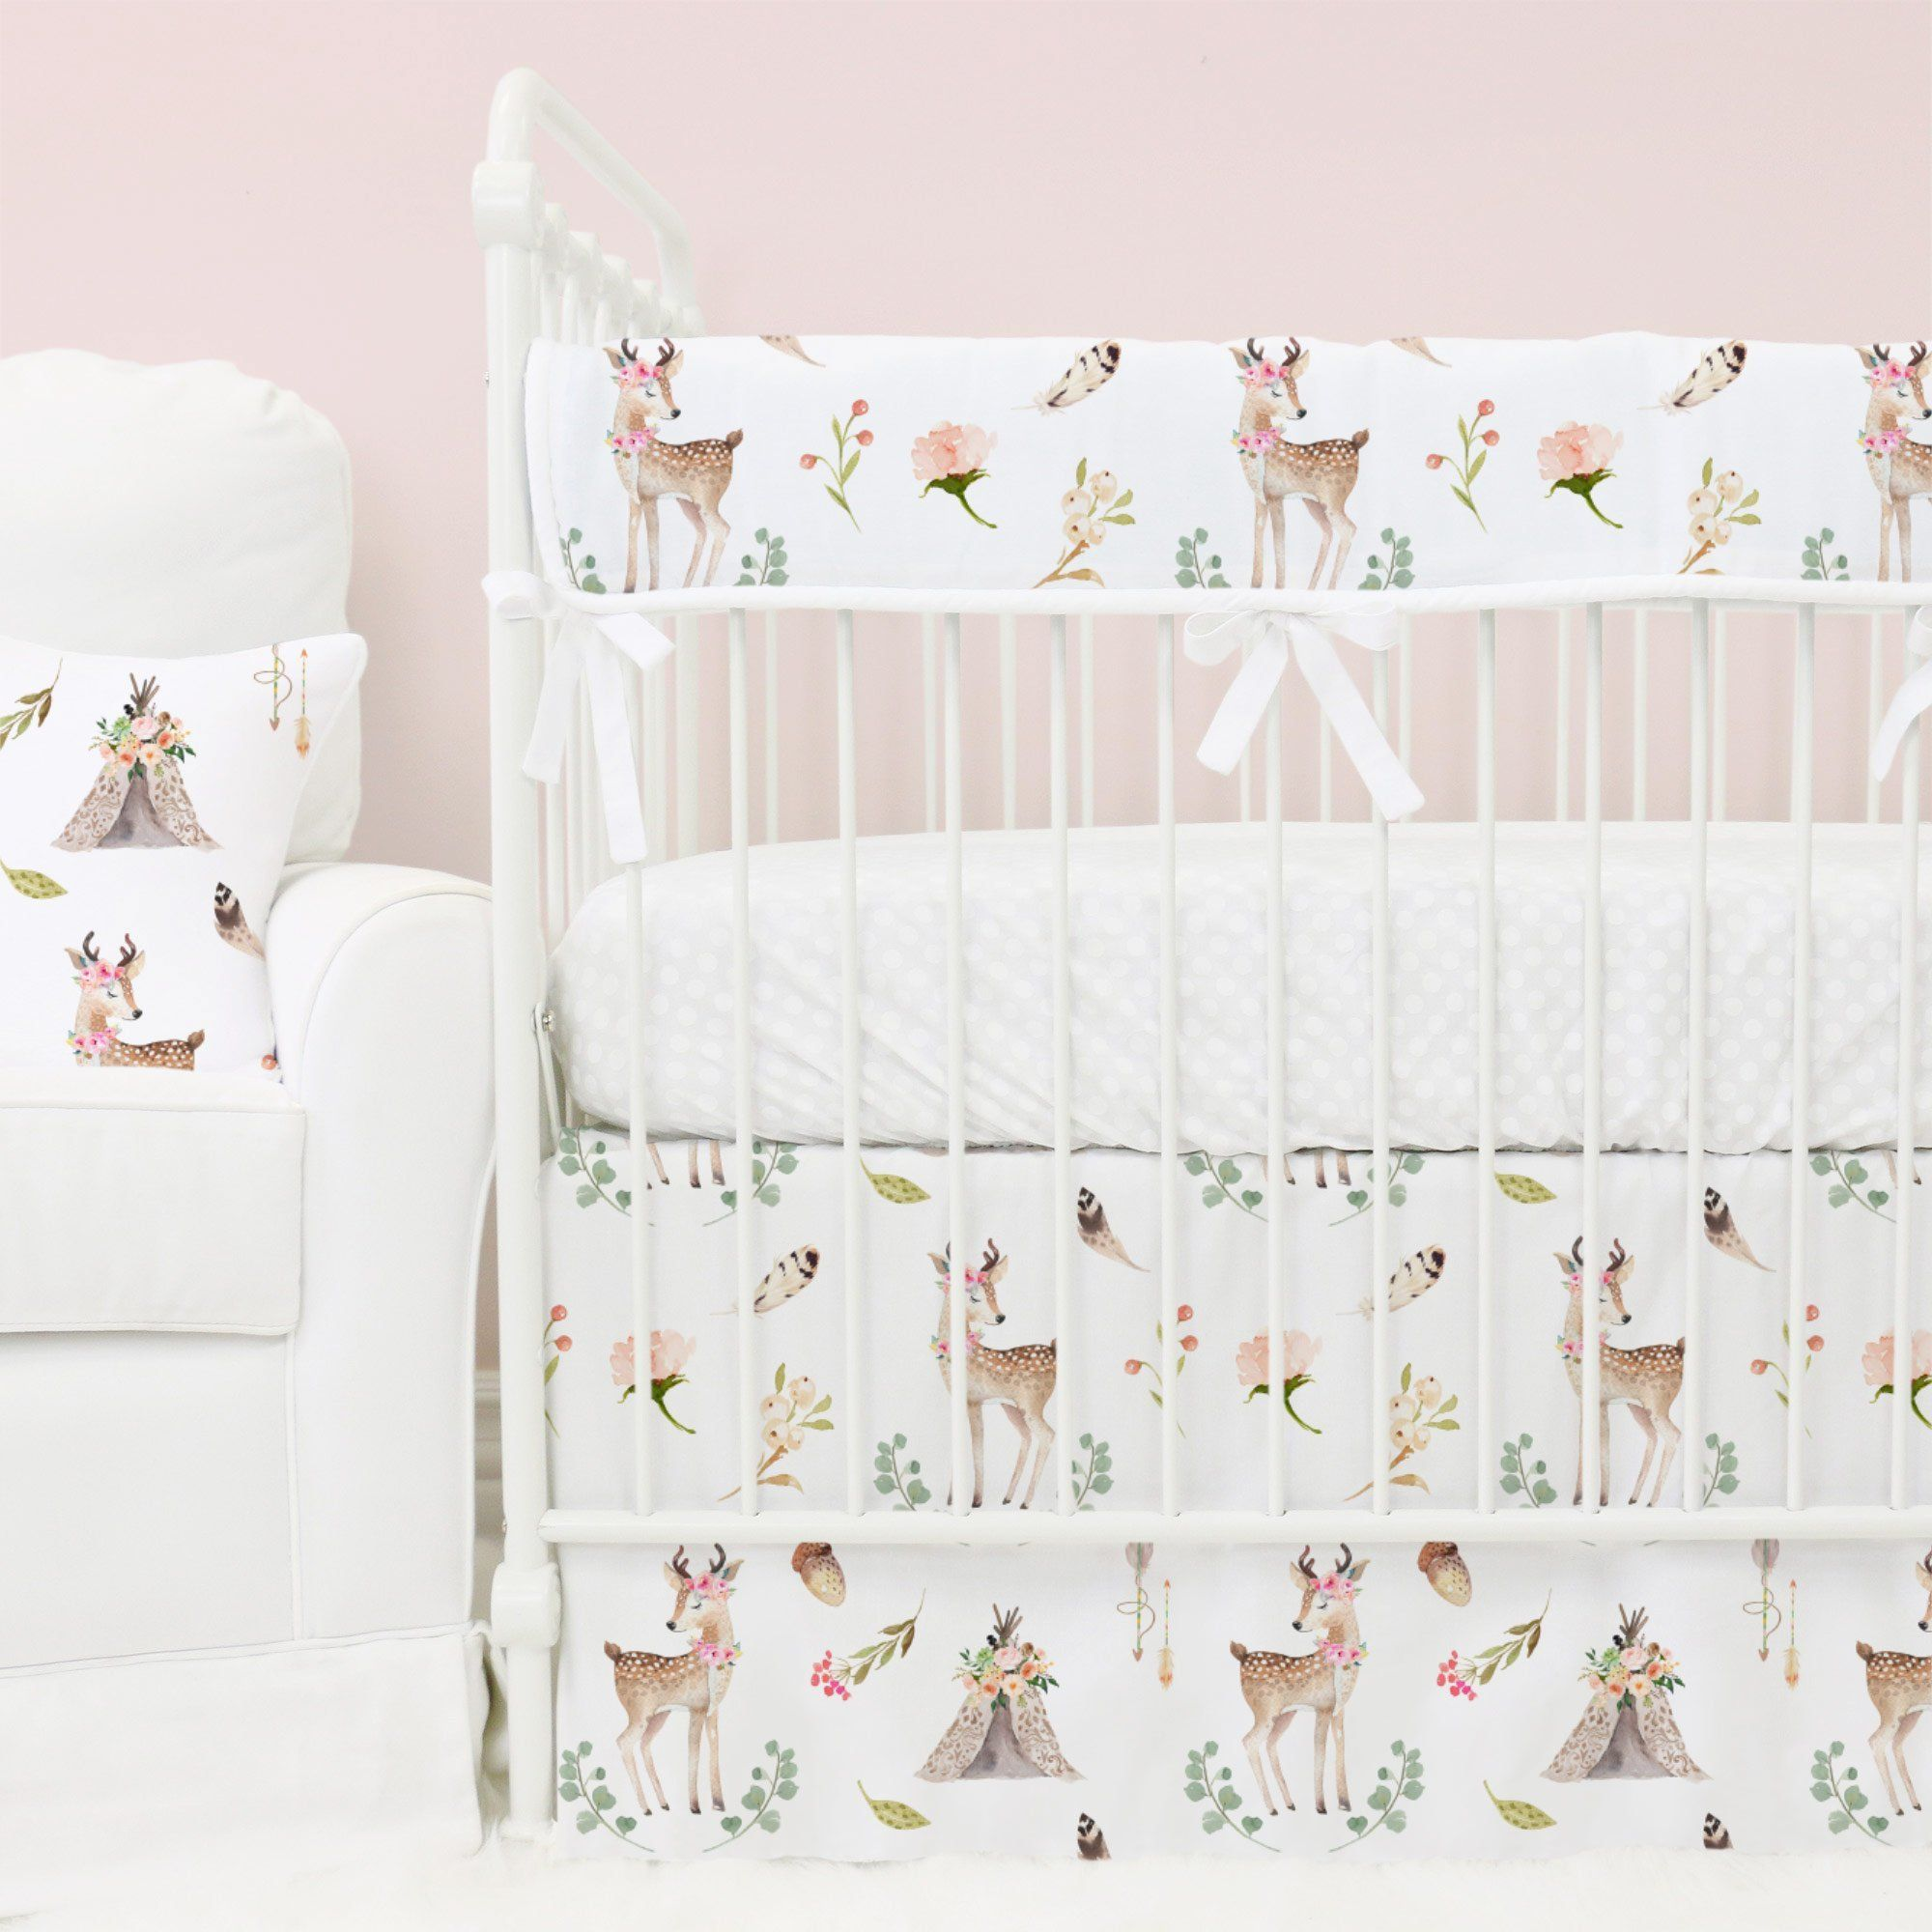 Blakely S Boho Woodland Deer Nursery Bedding Crib Bedding Girl